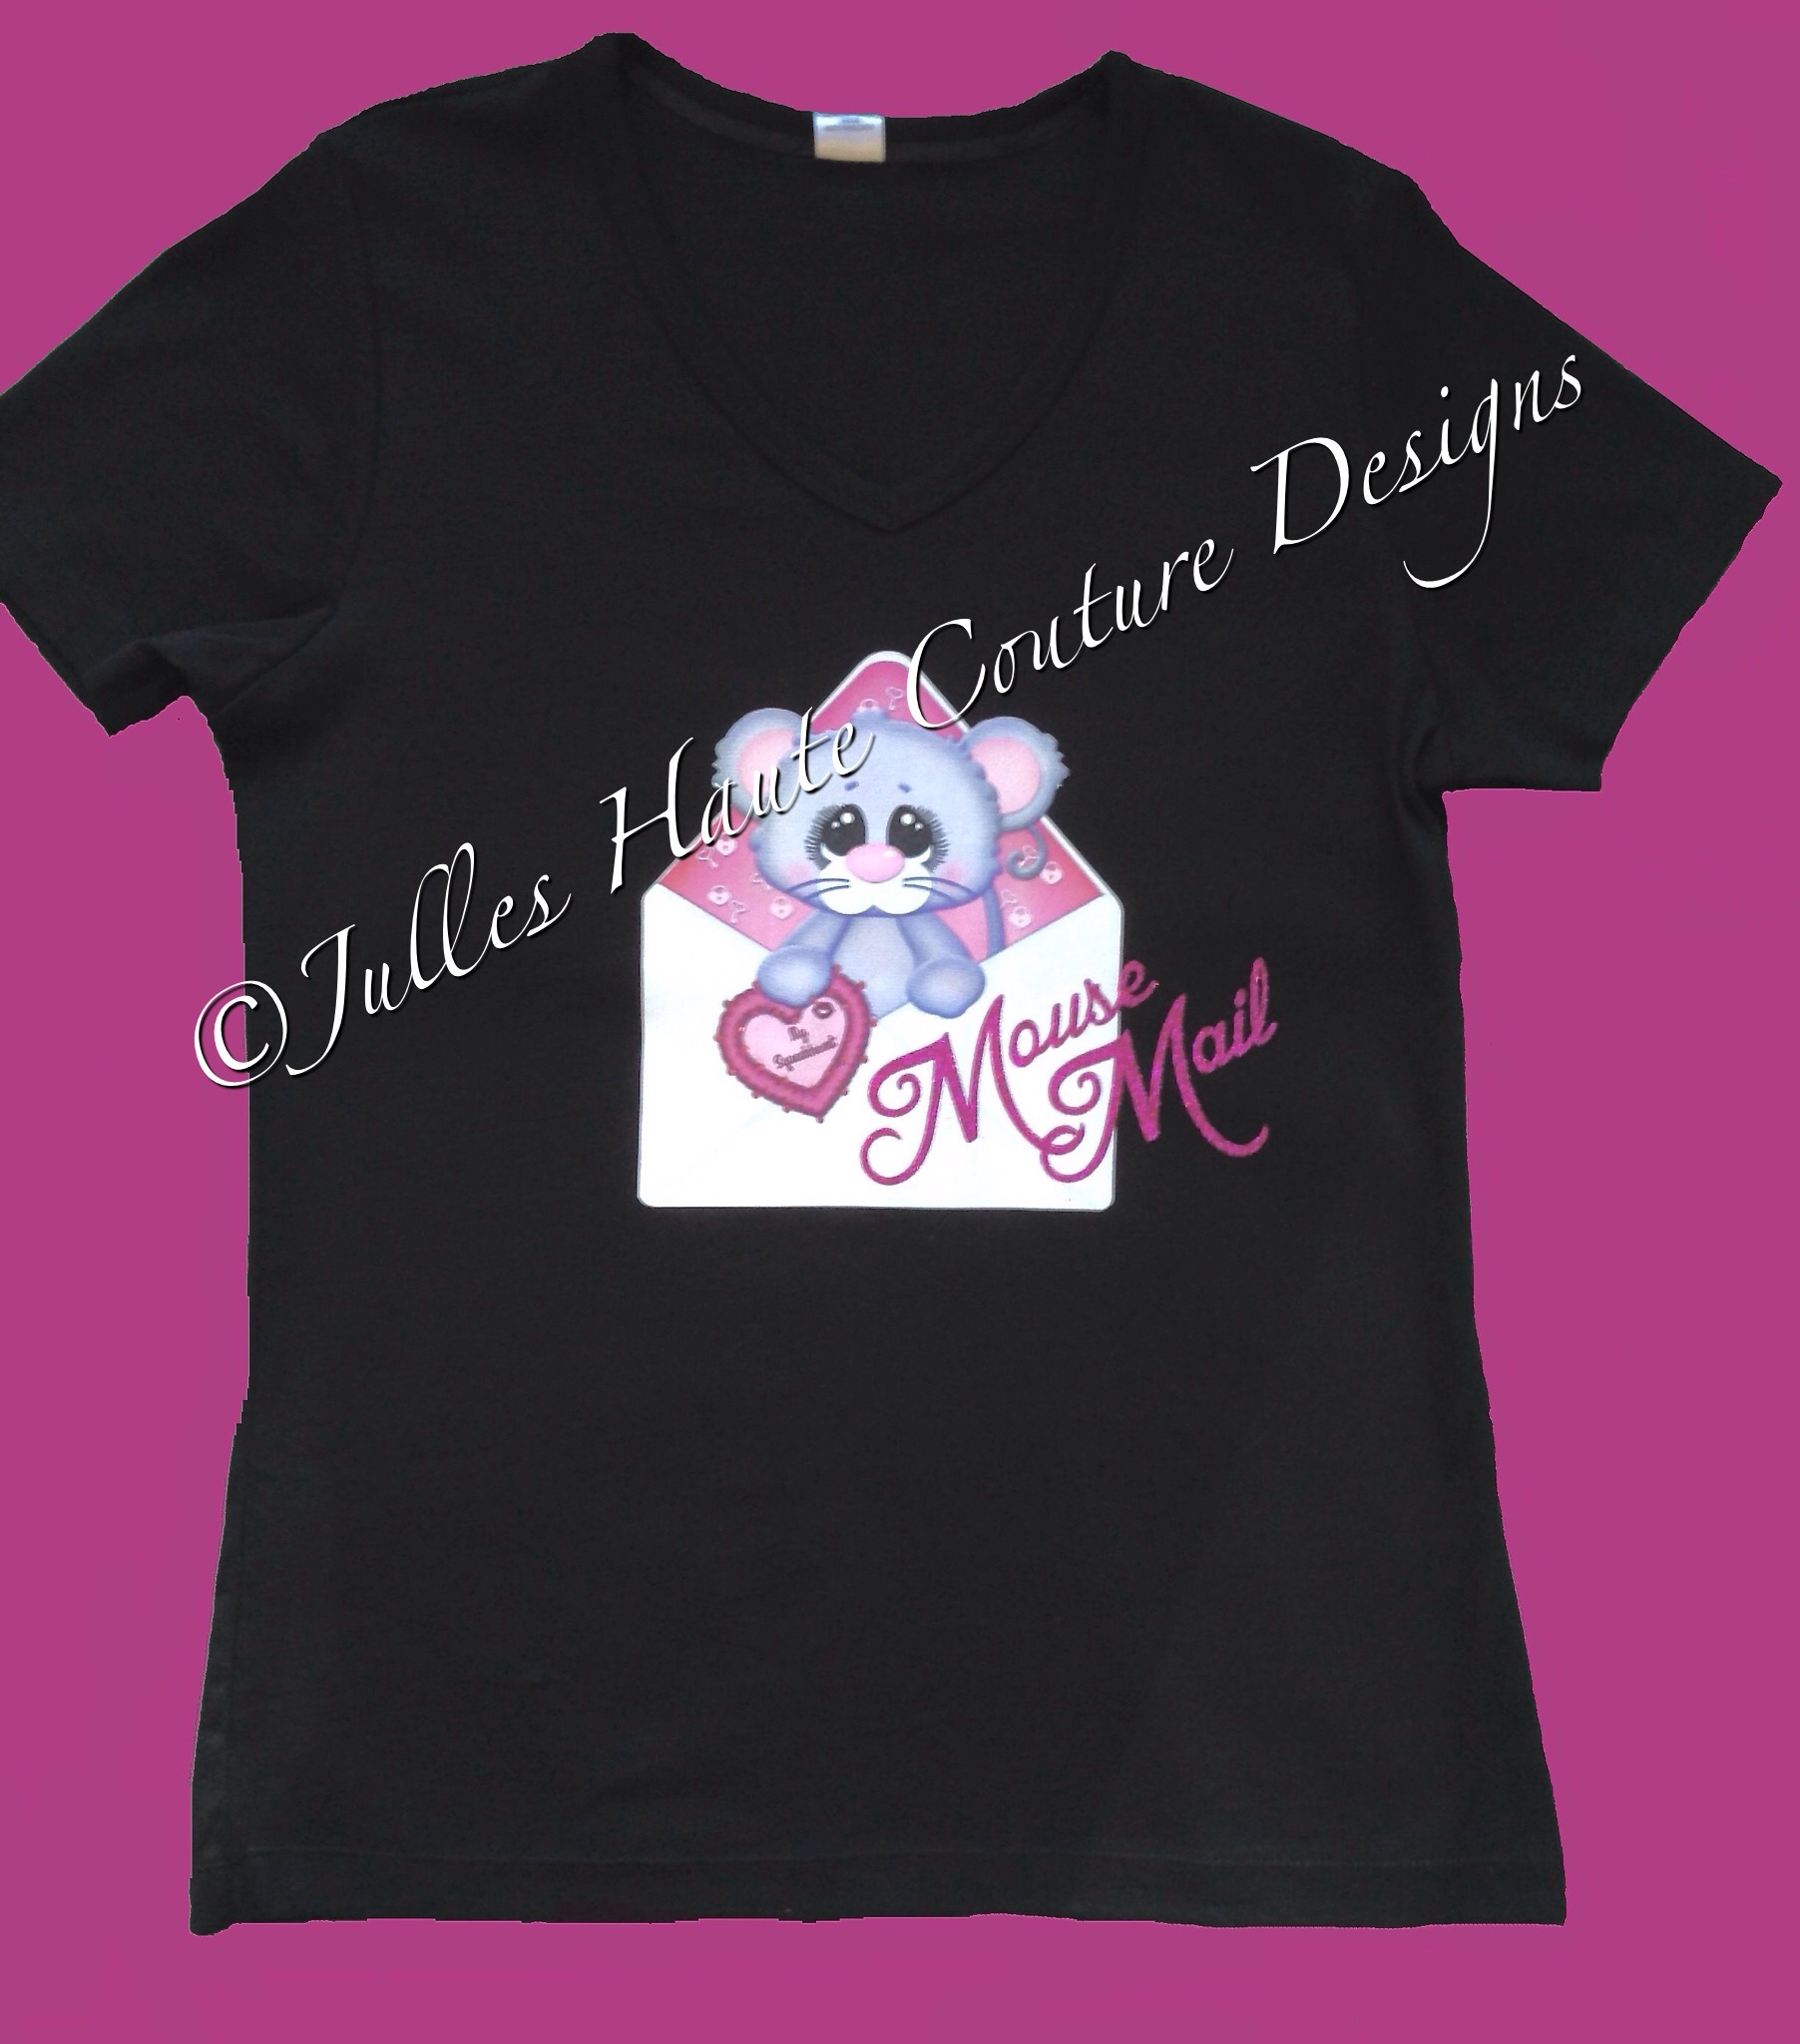 mouse-mail-t-shirt.jpg